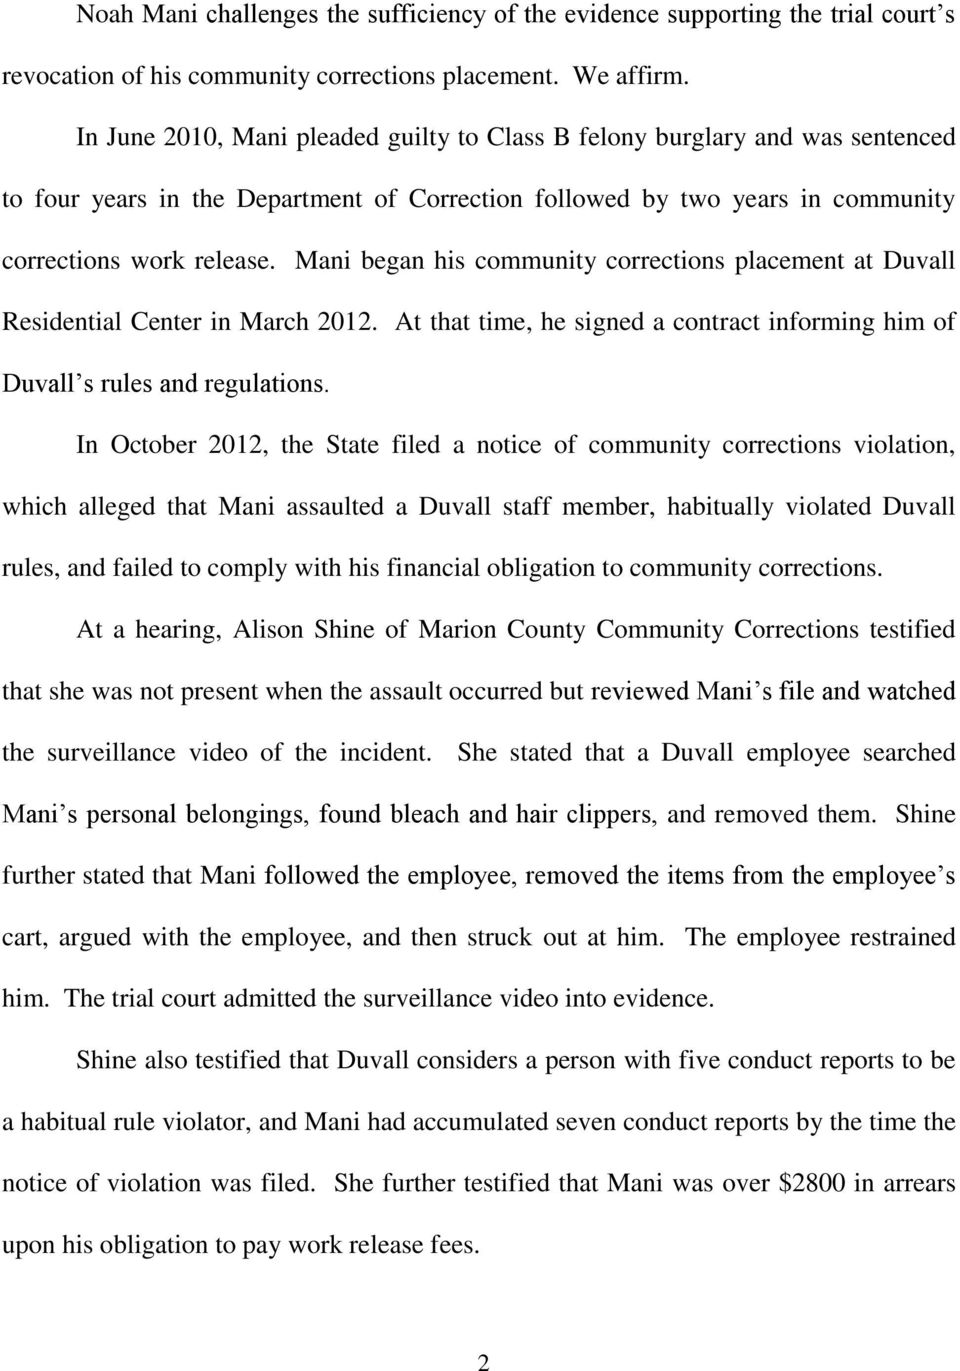 Mani began his community corrections placement at Duvall Residential Center in March 2012. At that time, he signed a contract informing him of Duvall s rules and regulations.